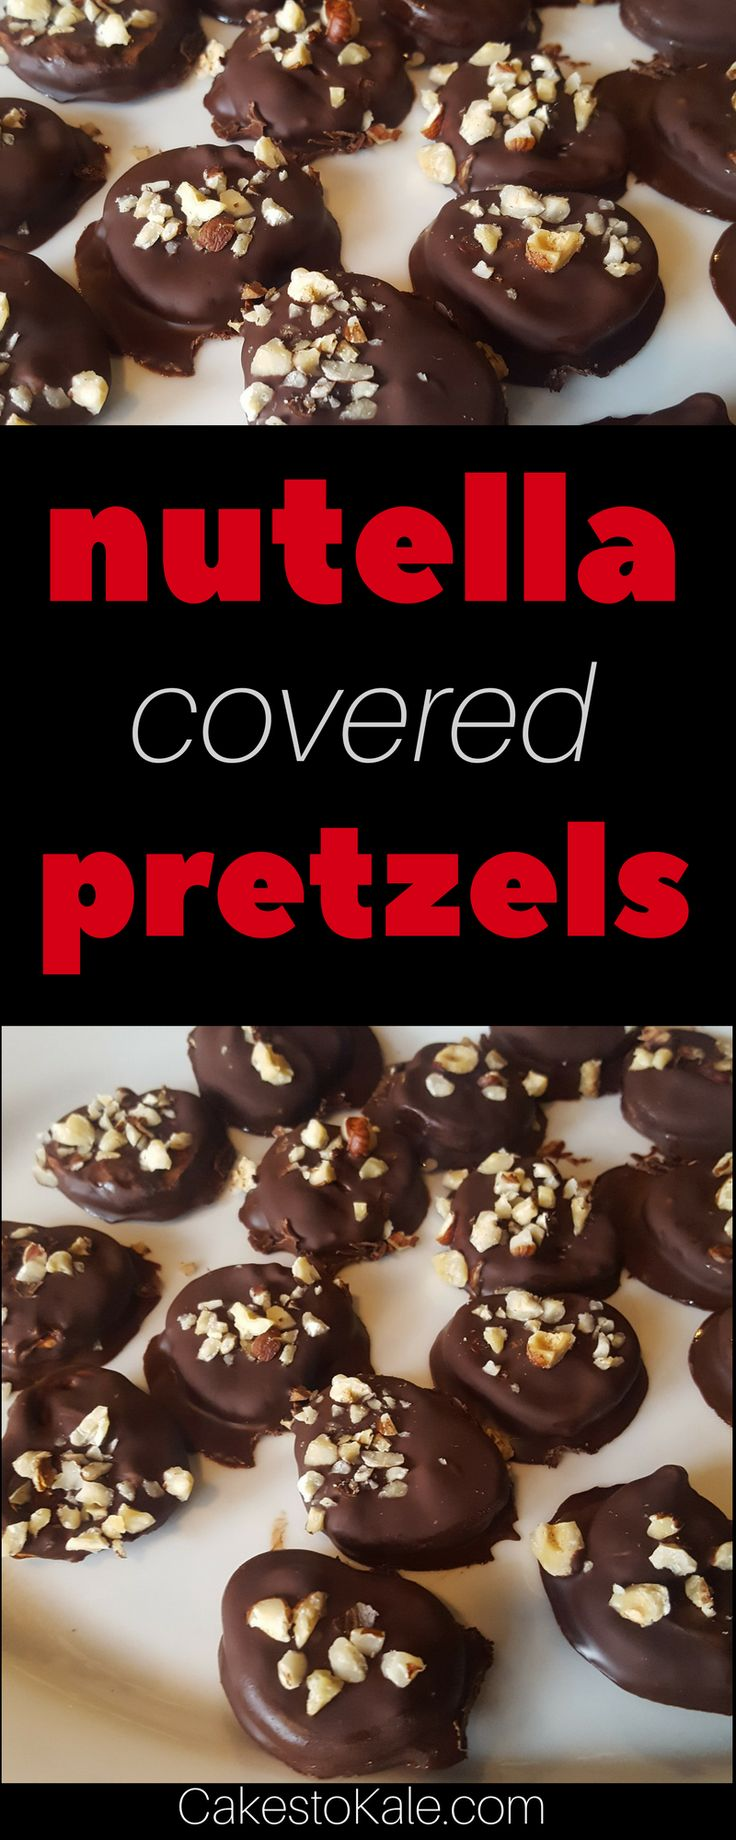 Nutella Covered Pretzels #recipe #food #nutella #christmas